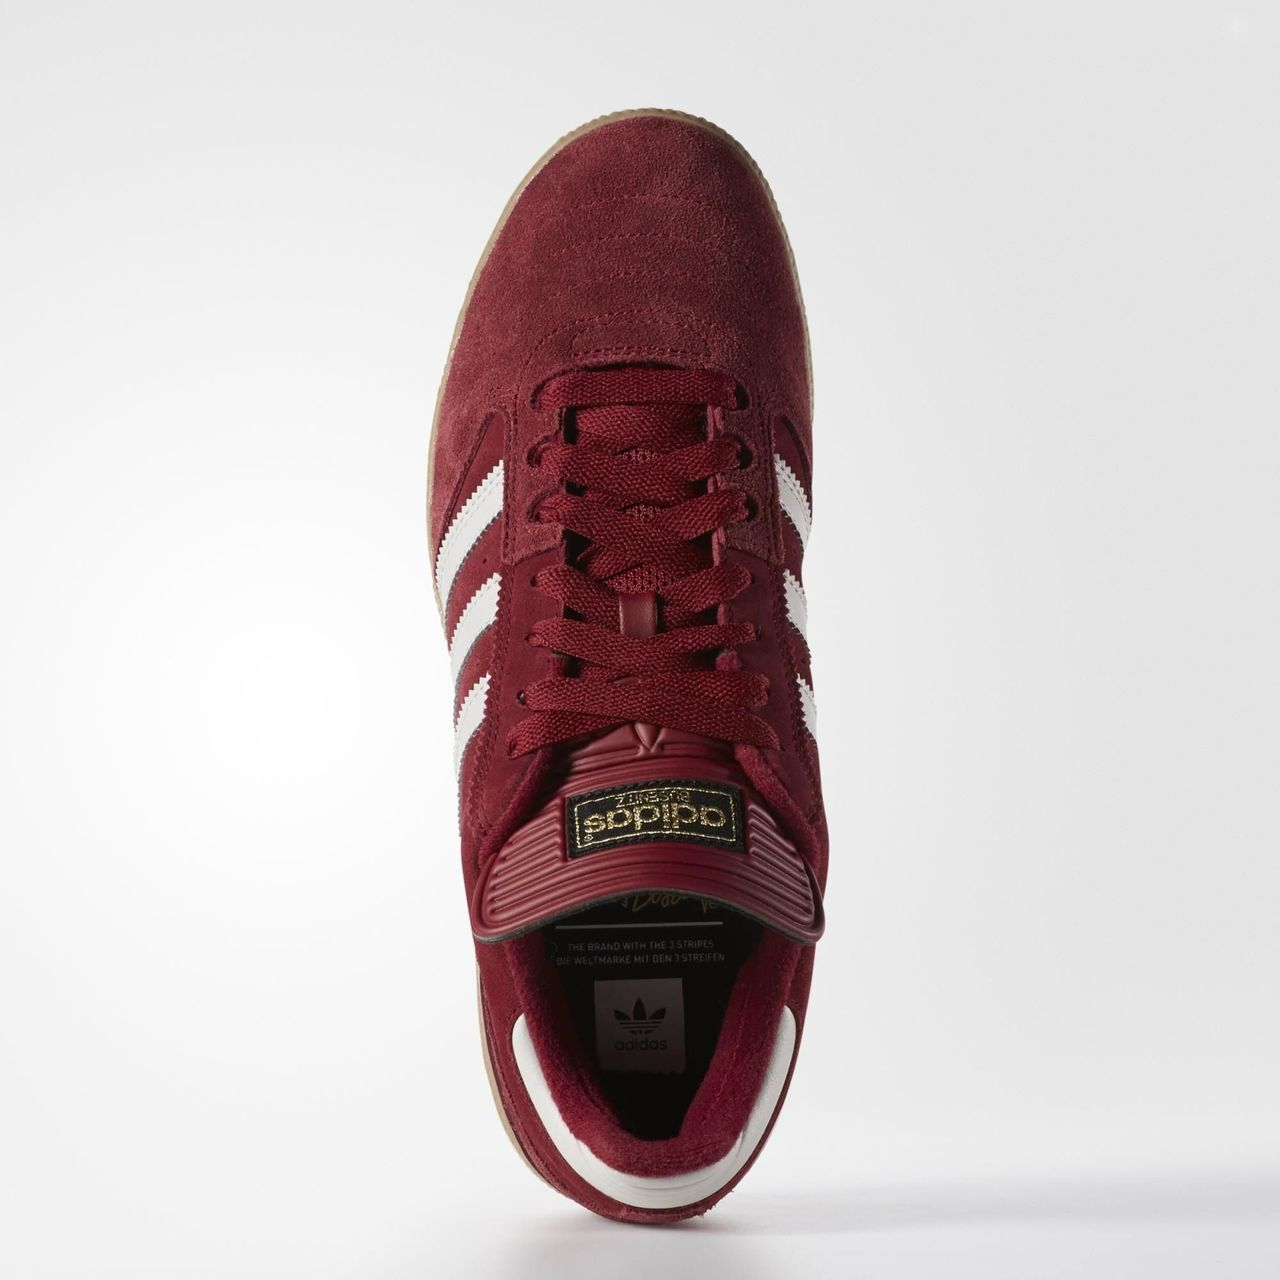 Adidas Busenitz Adidas/ Shoes Shoes Collegiate Borgoña/ Mist Stone/ Gum db1b604 - omkostningertil.website